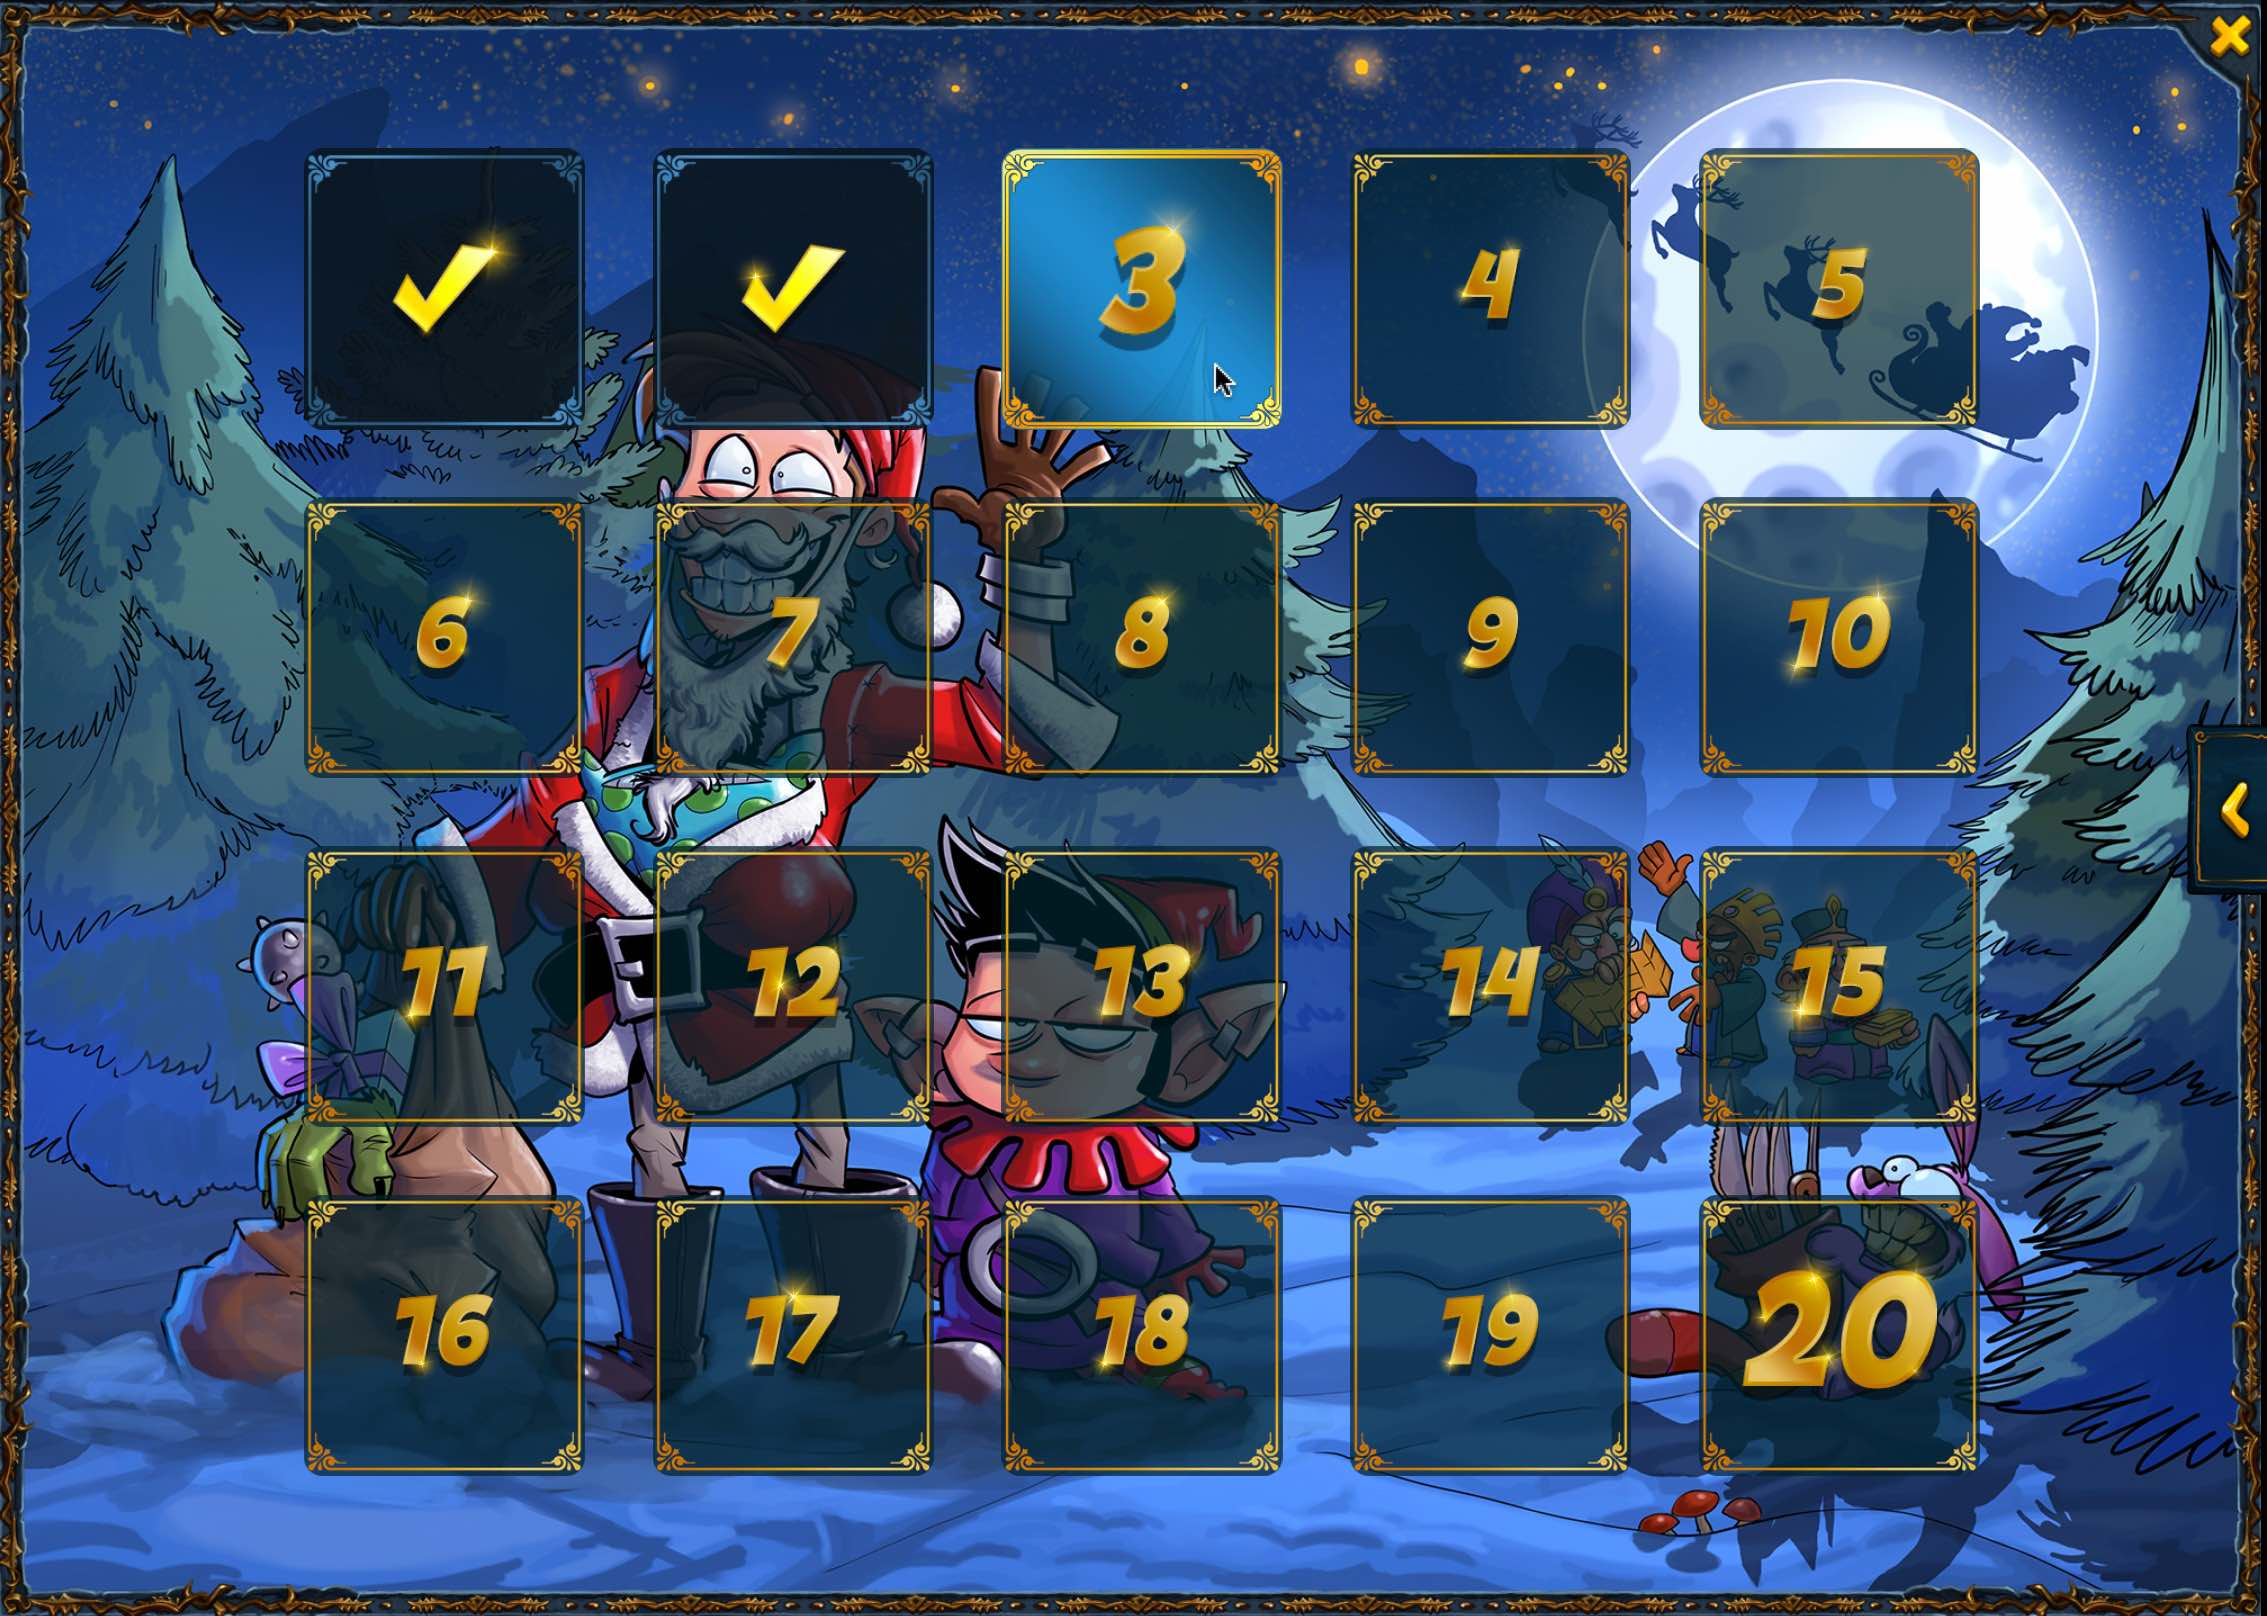 All doors of the Shakes and Fidget advent calendar